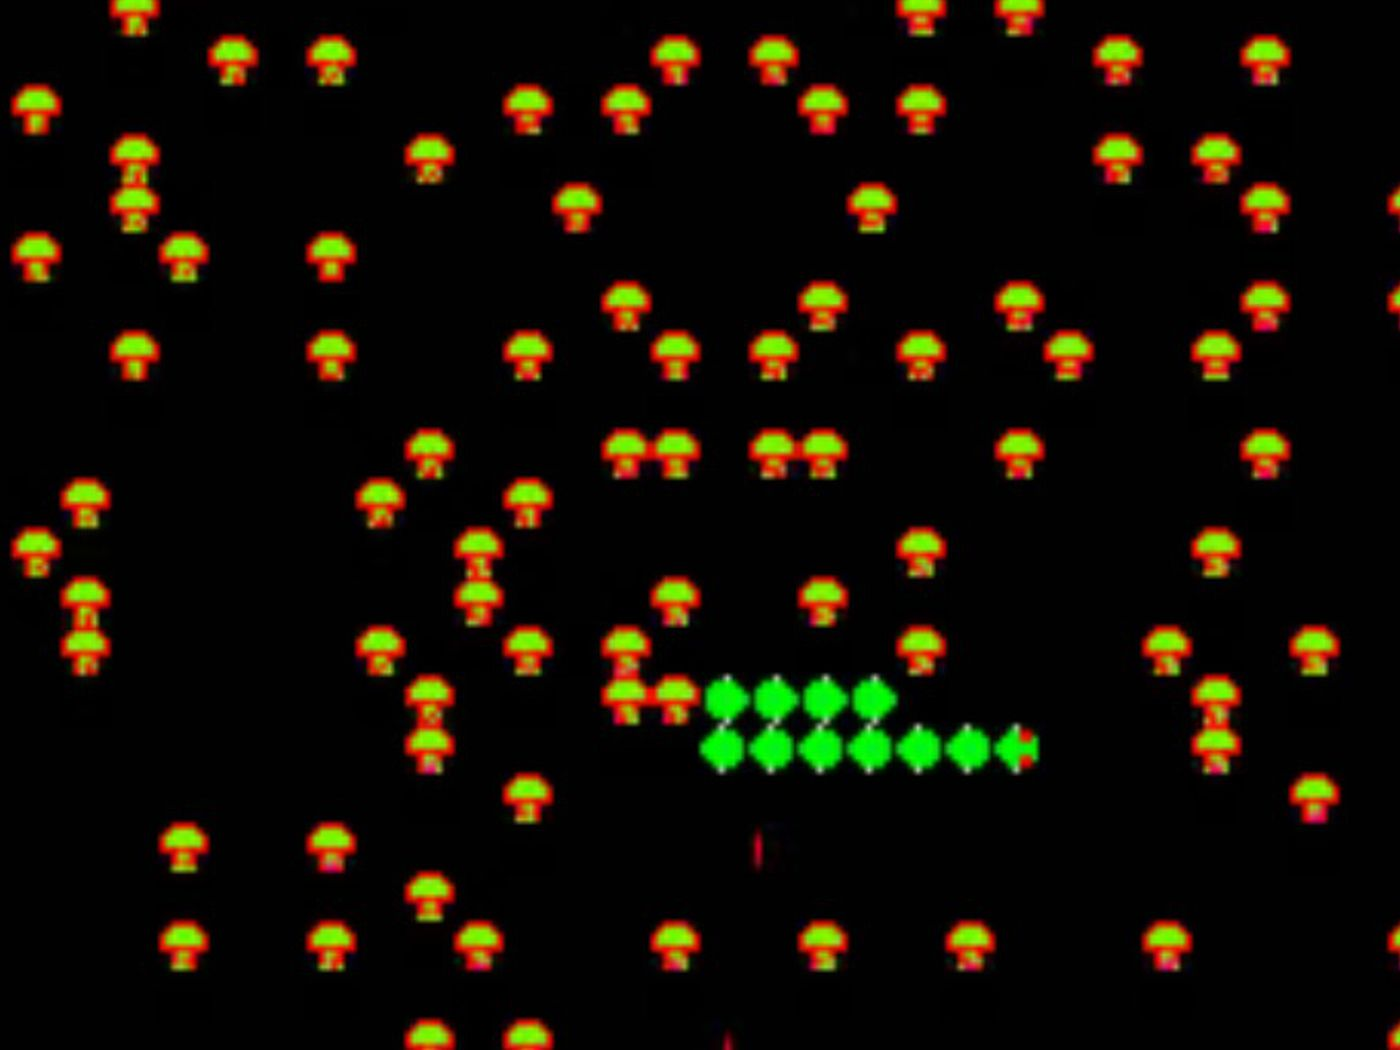 Classic Atari Games Centipede And Missile Command Will Be Adapted Into Movies Polygon